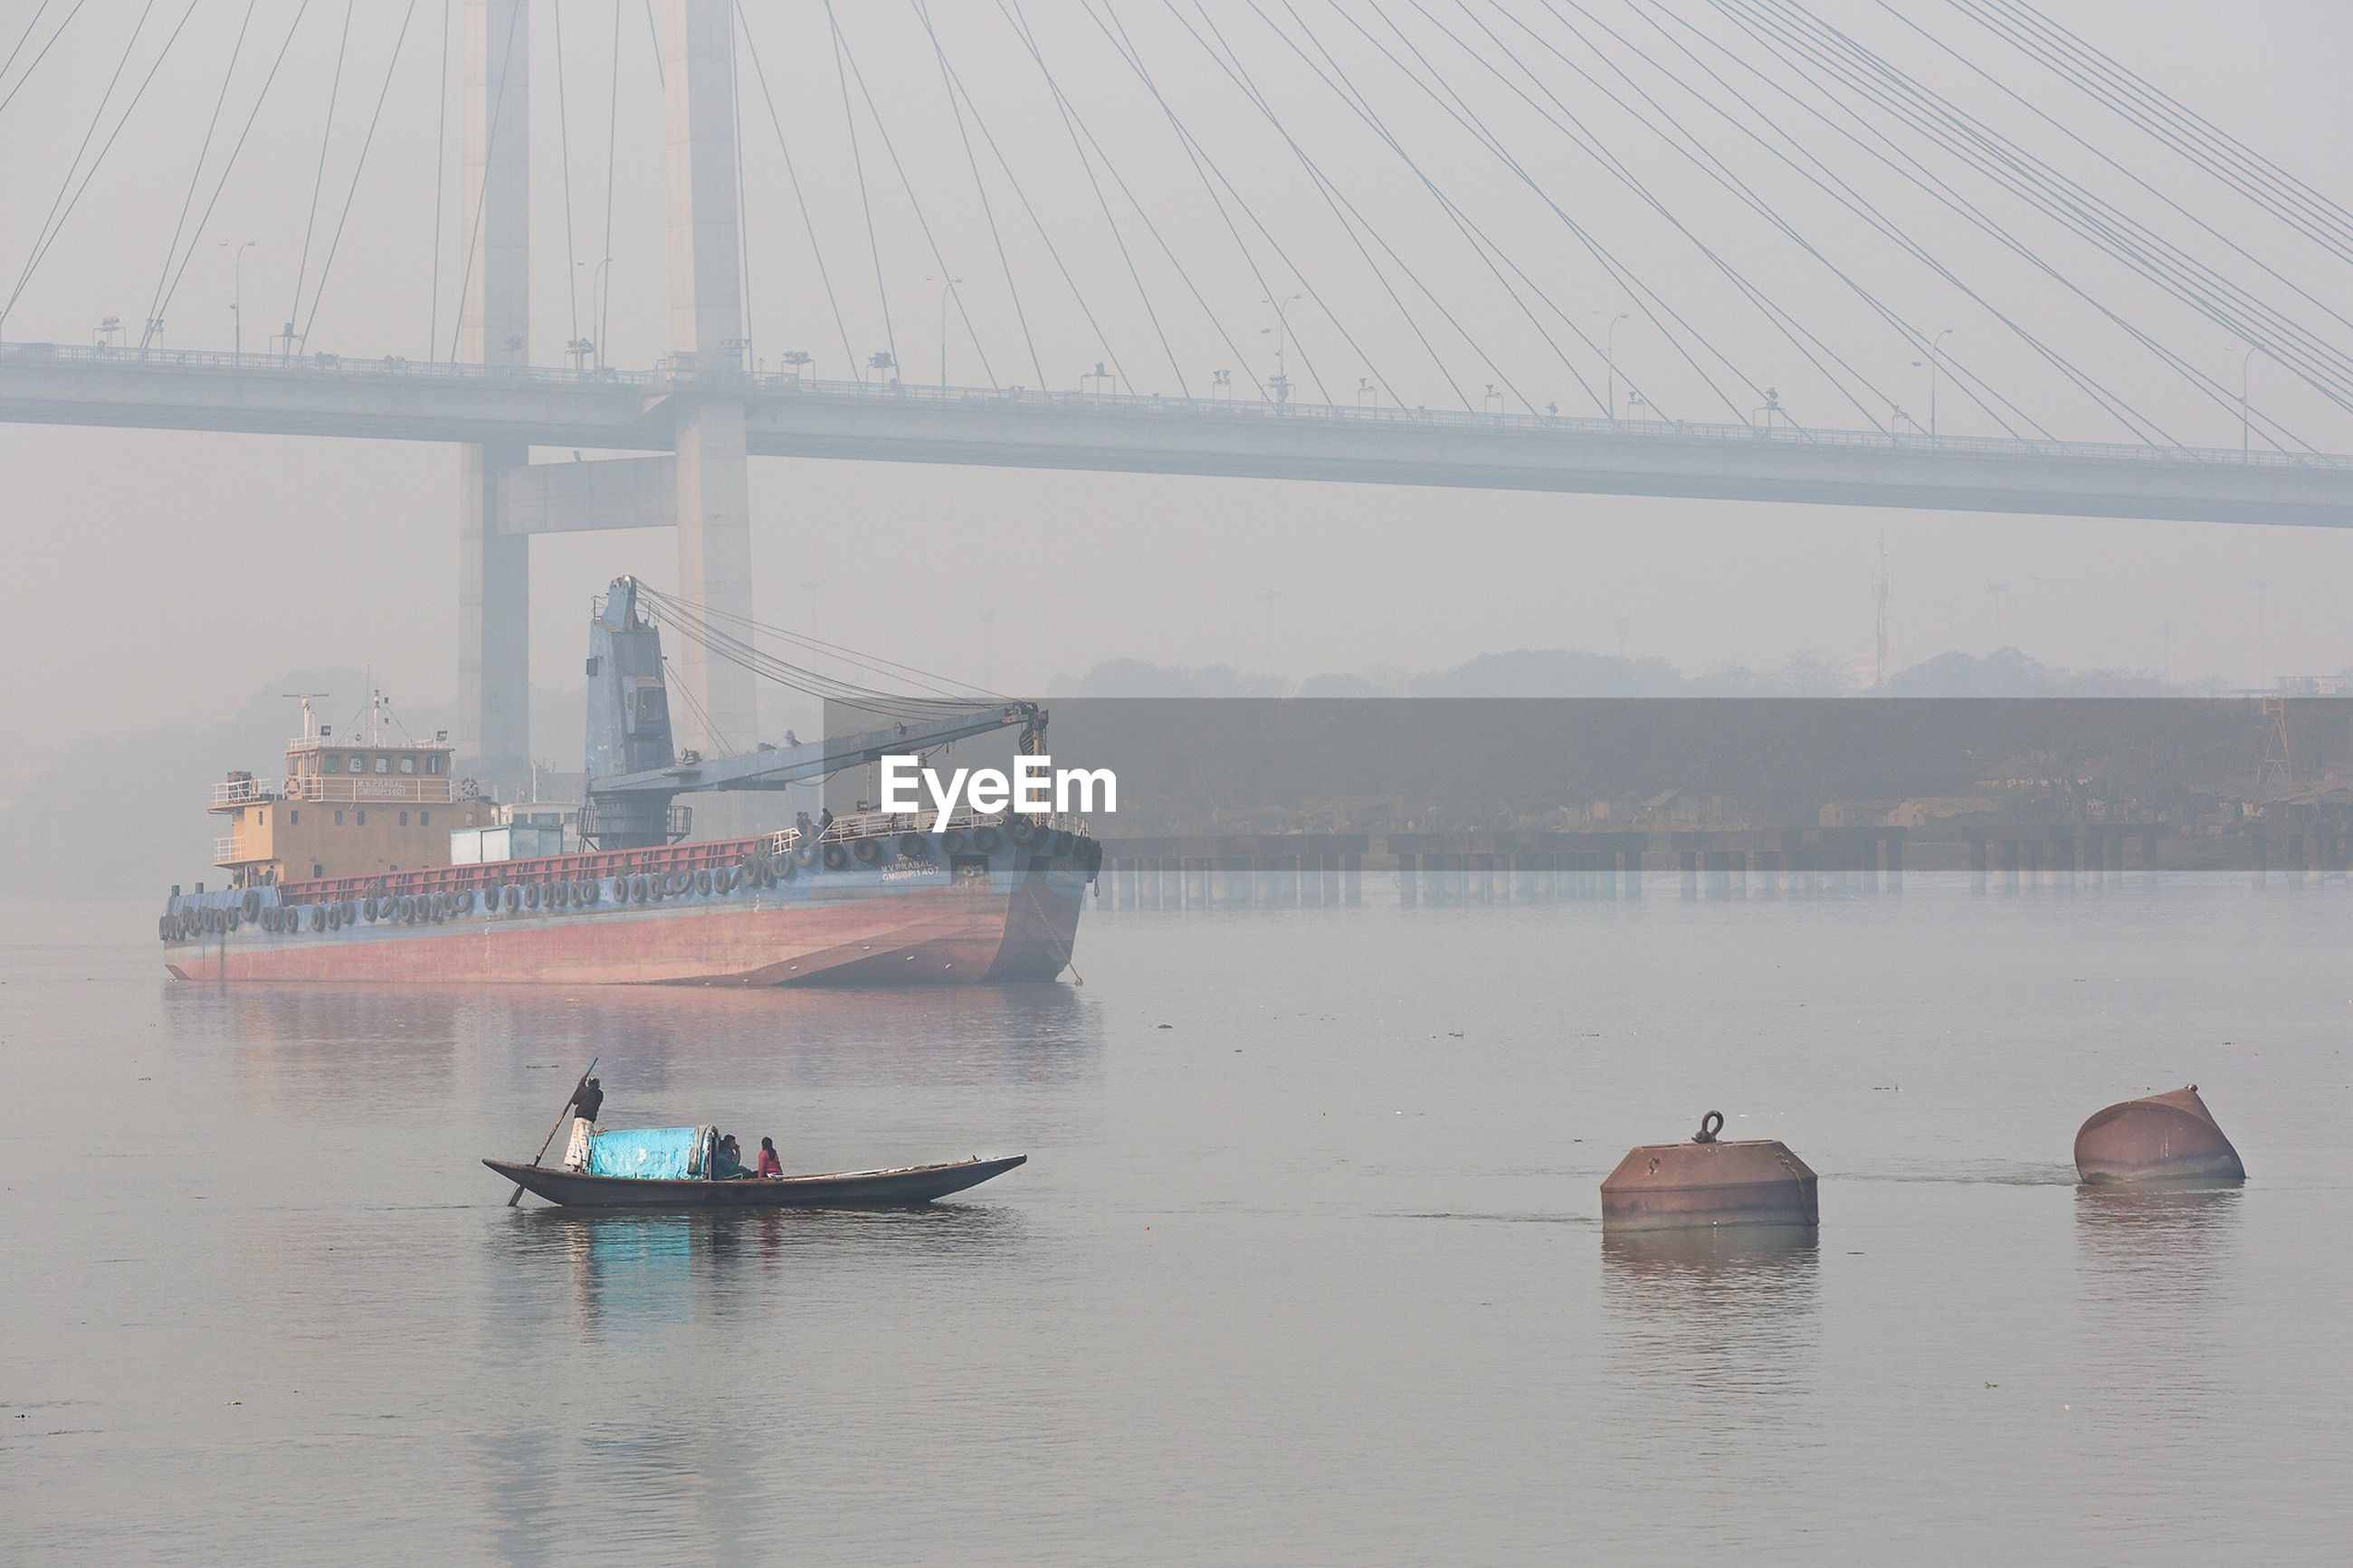 Scenic view of boats in water next to bridge